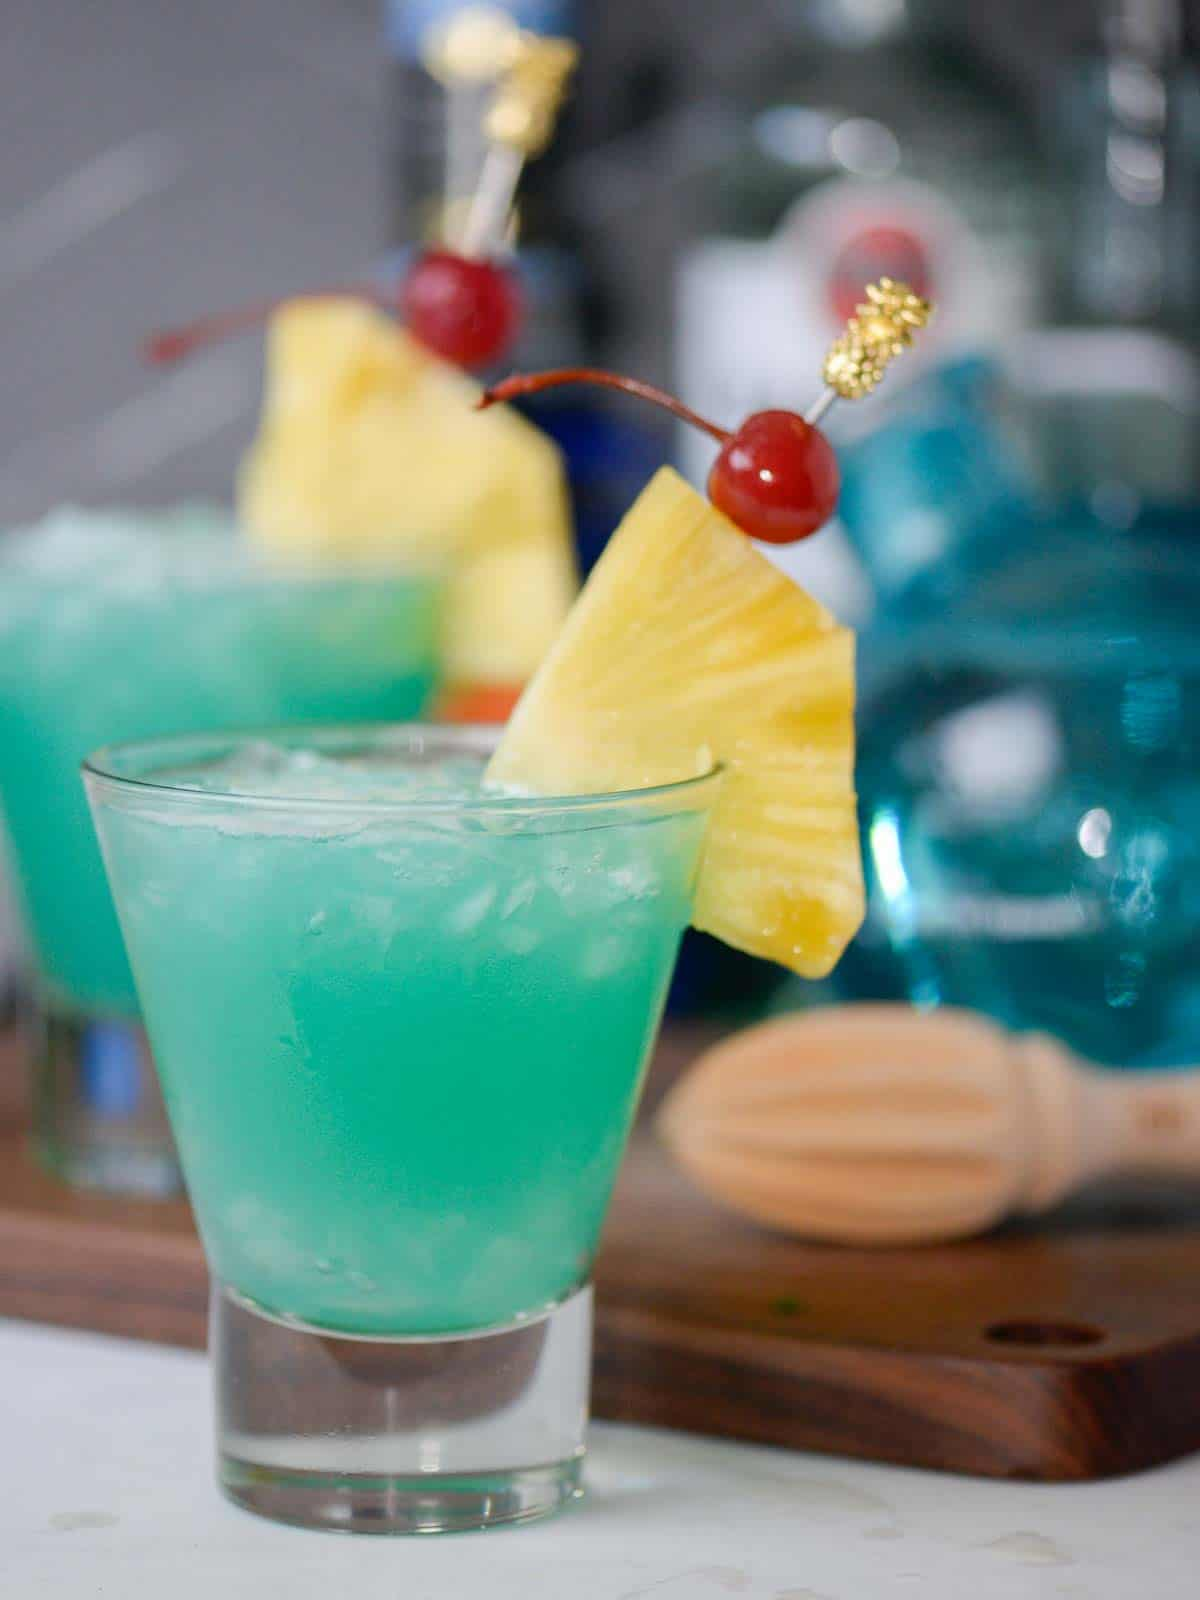 blue hawaii cocktails with pineapple and cherries